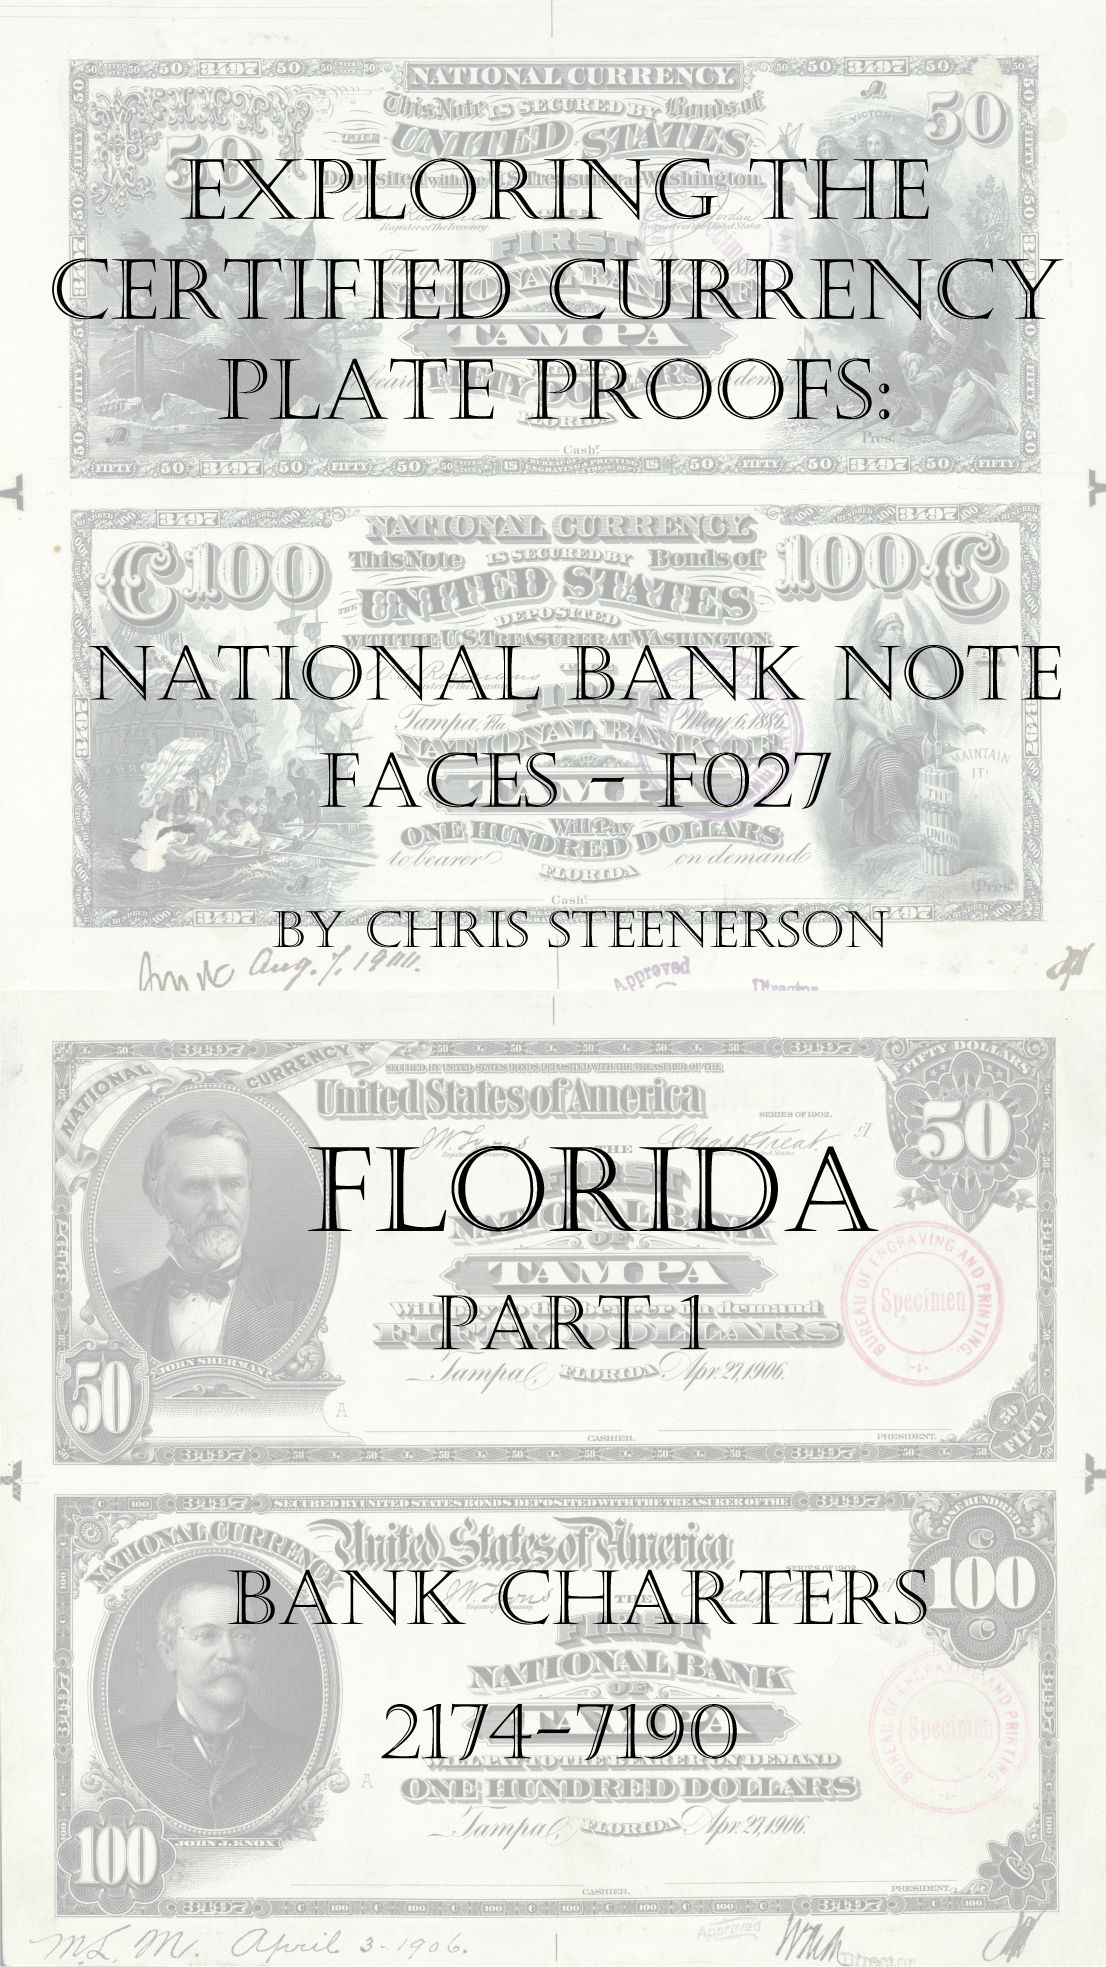 Florida National Bank Note Currency Proofs